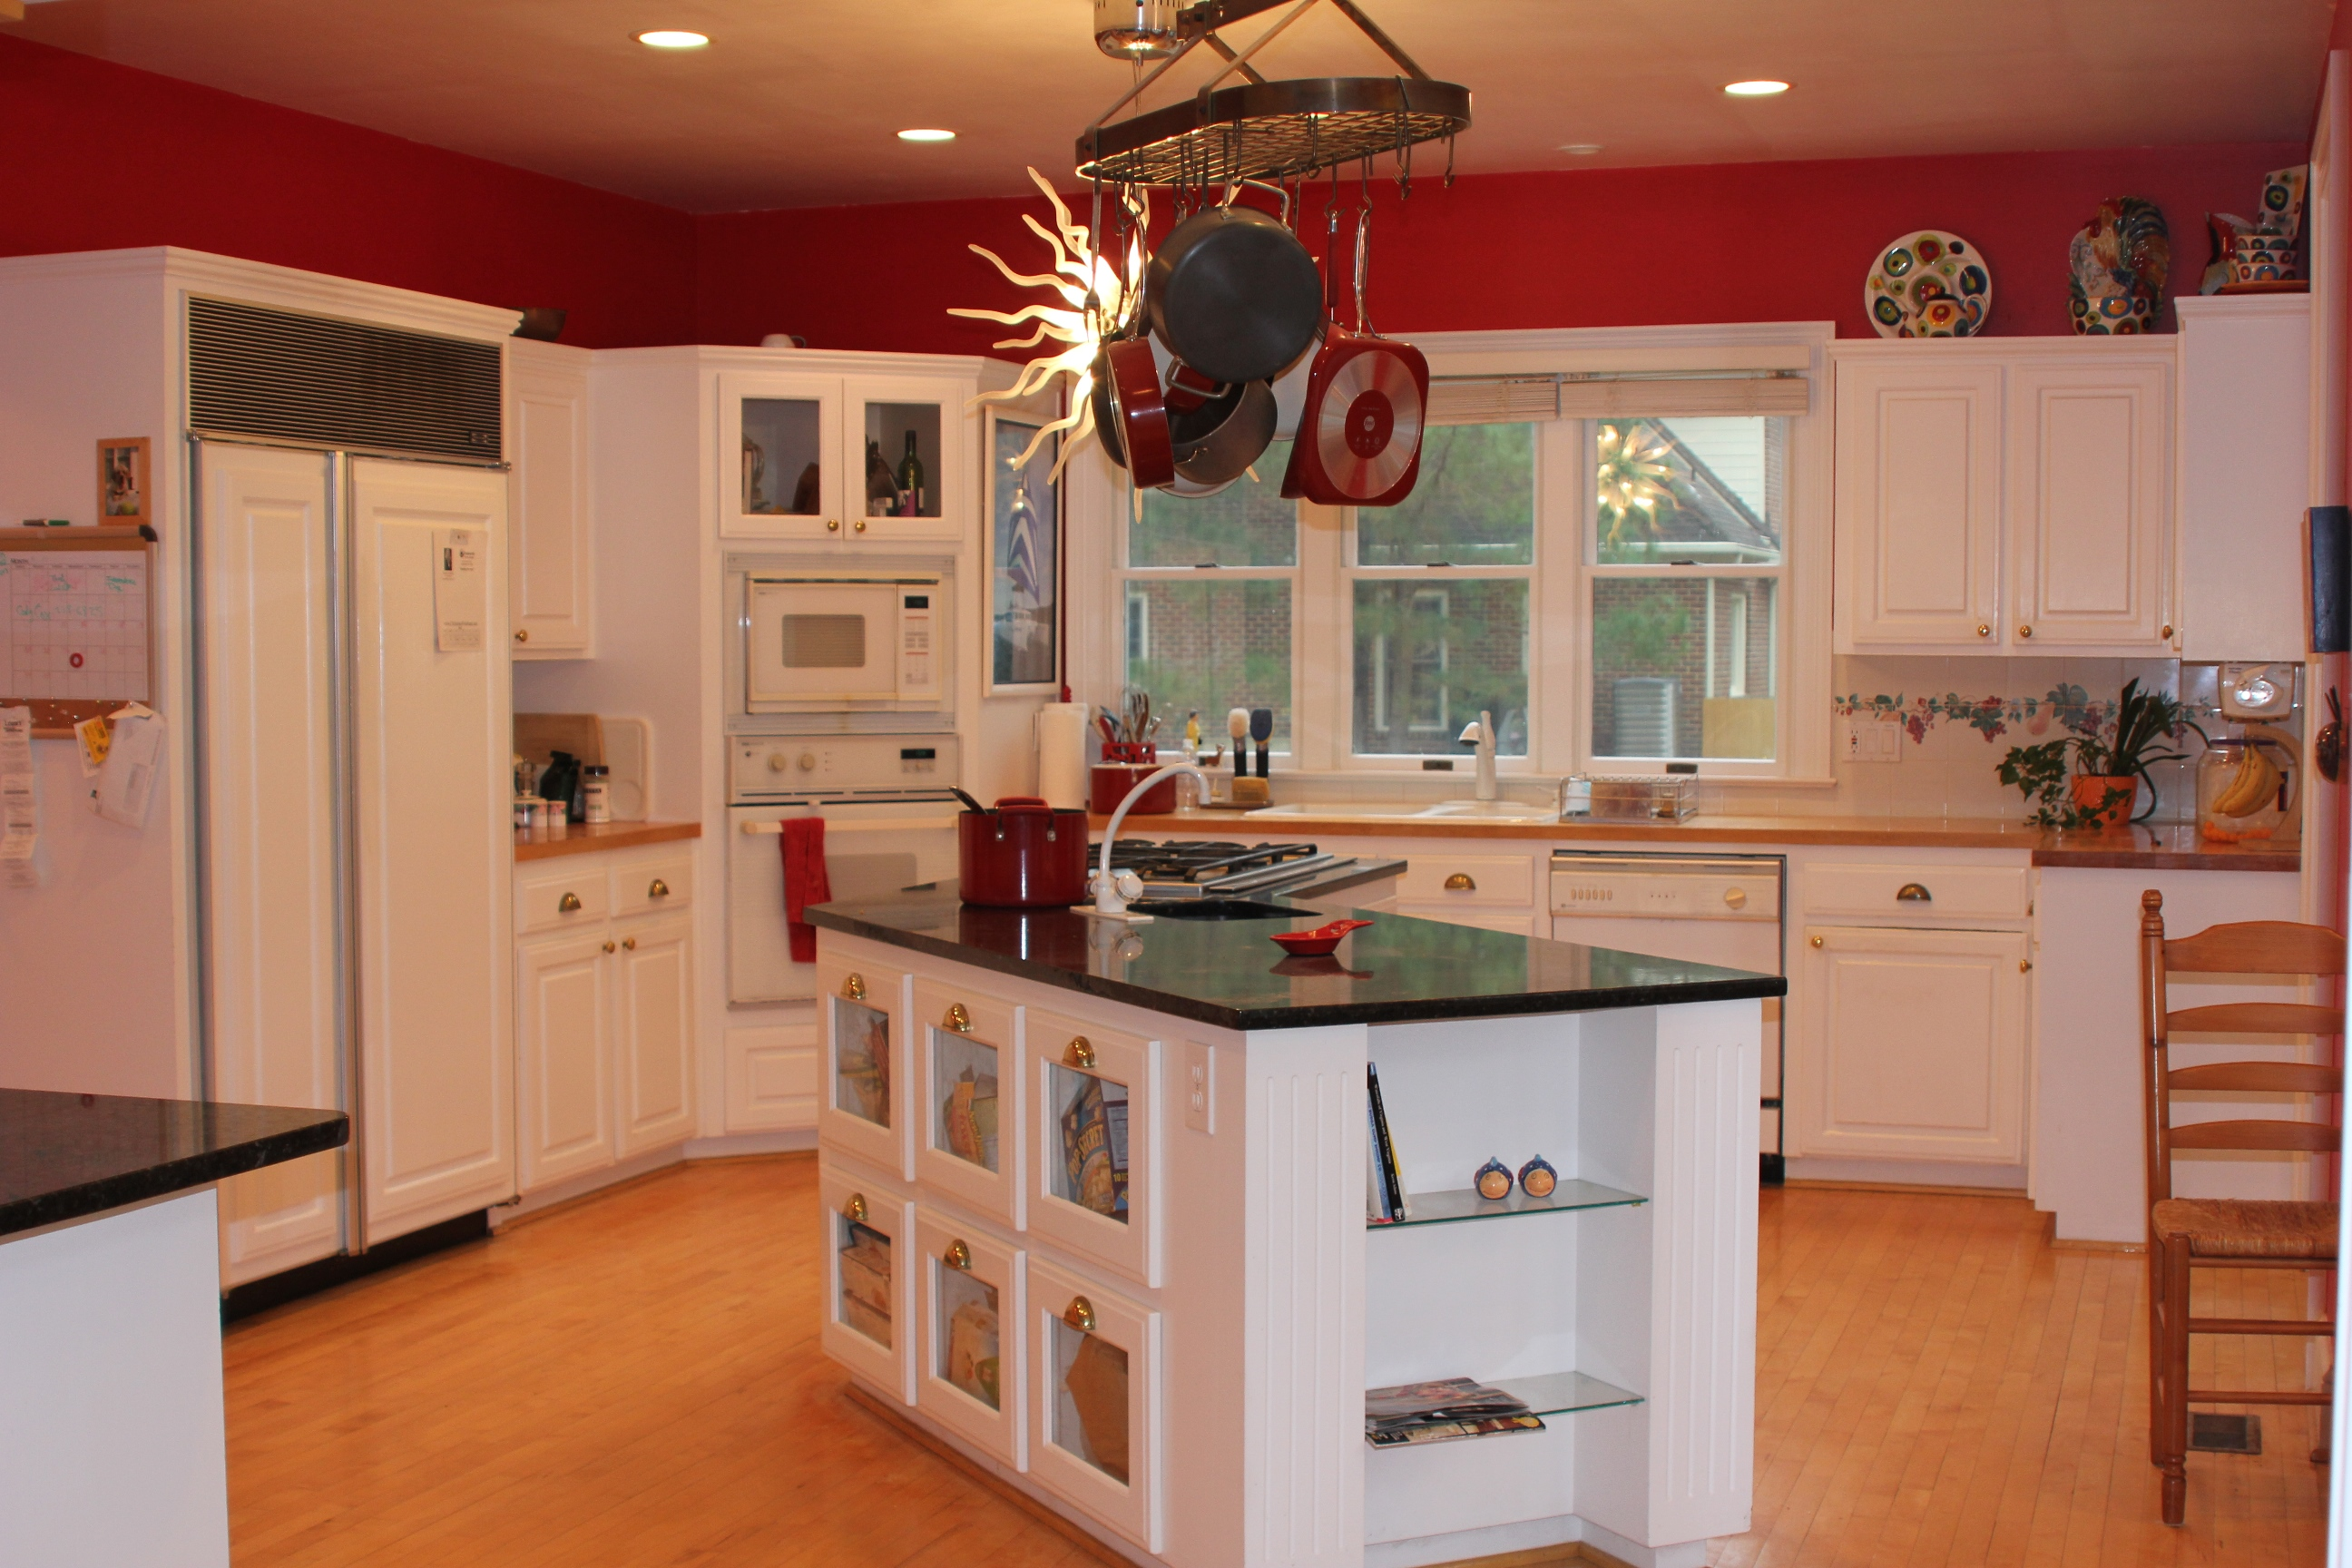 e of a kind home for sale in Croatan Listed by Allen Pyle